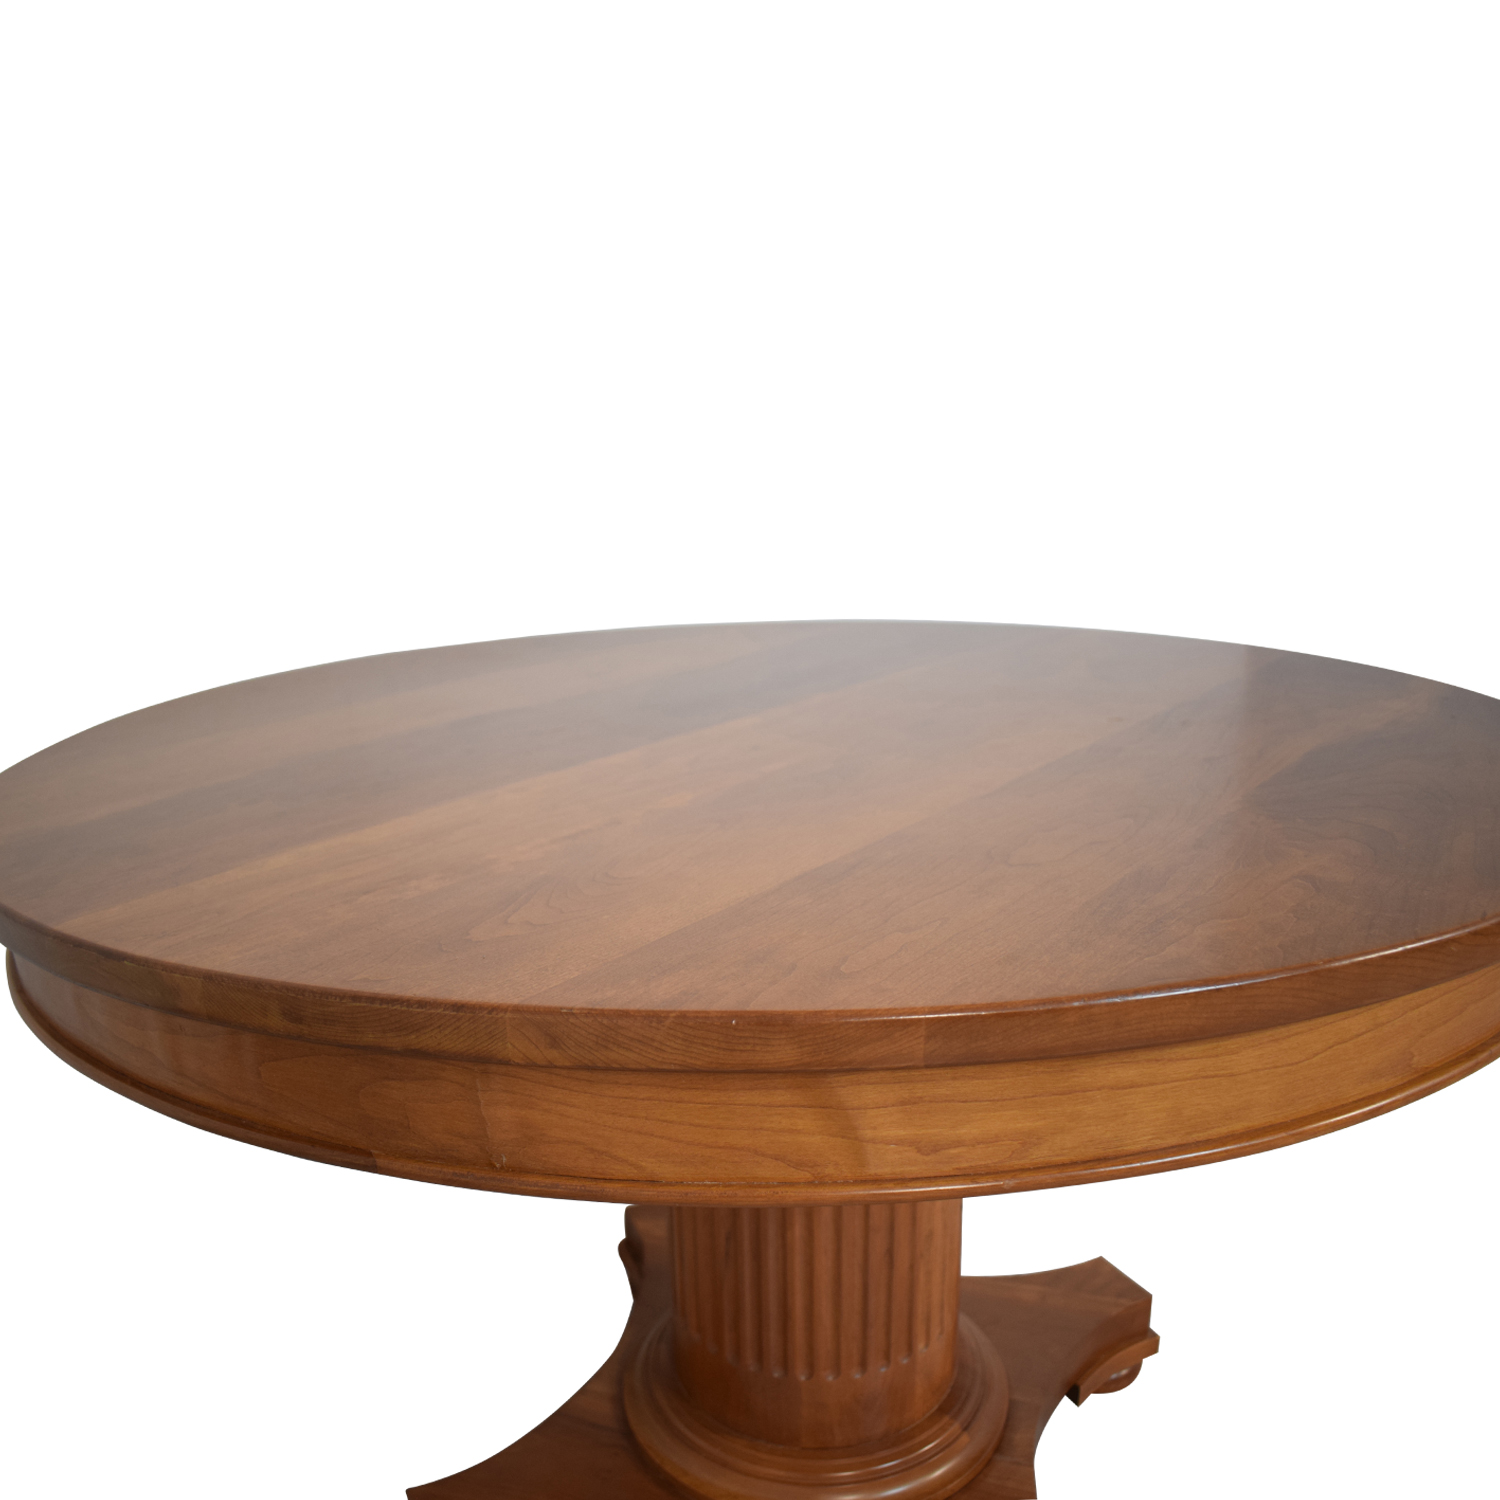 Wood Round Dinner Table BROWN